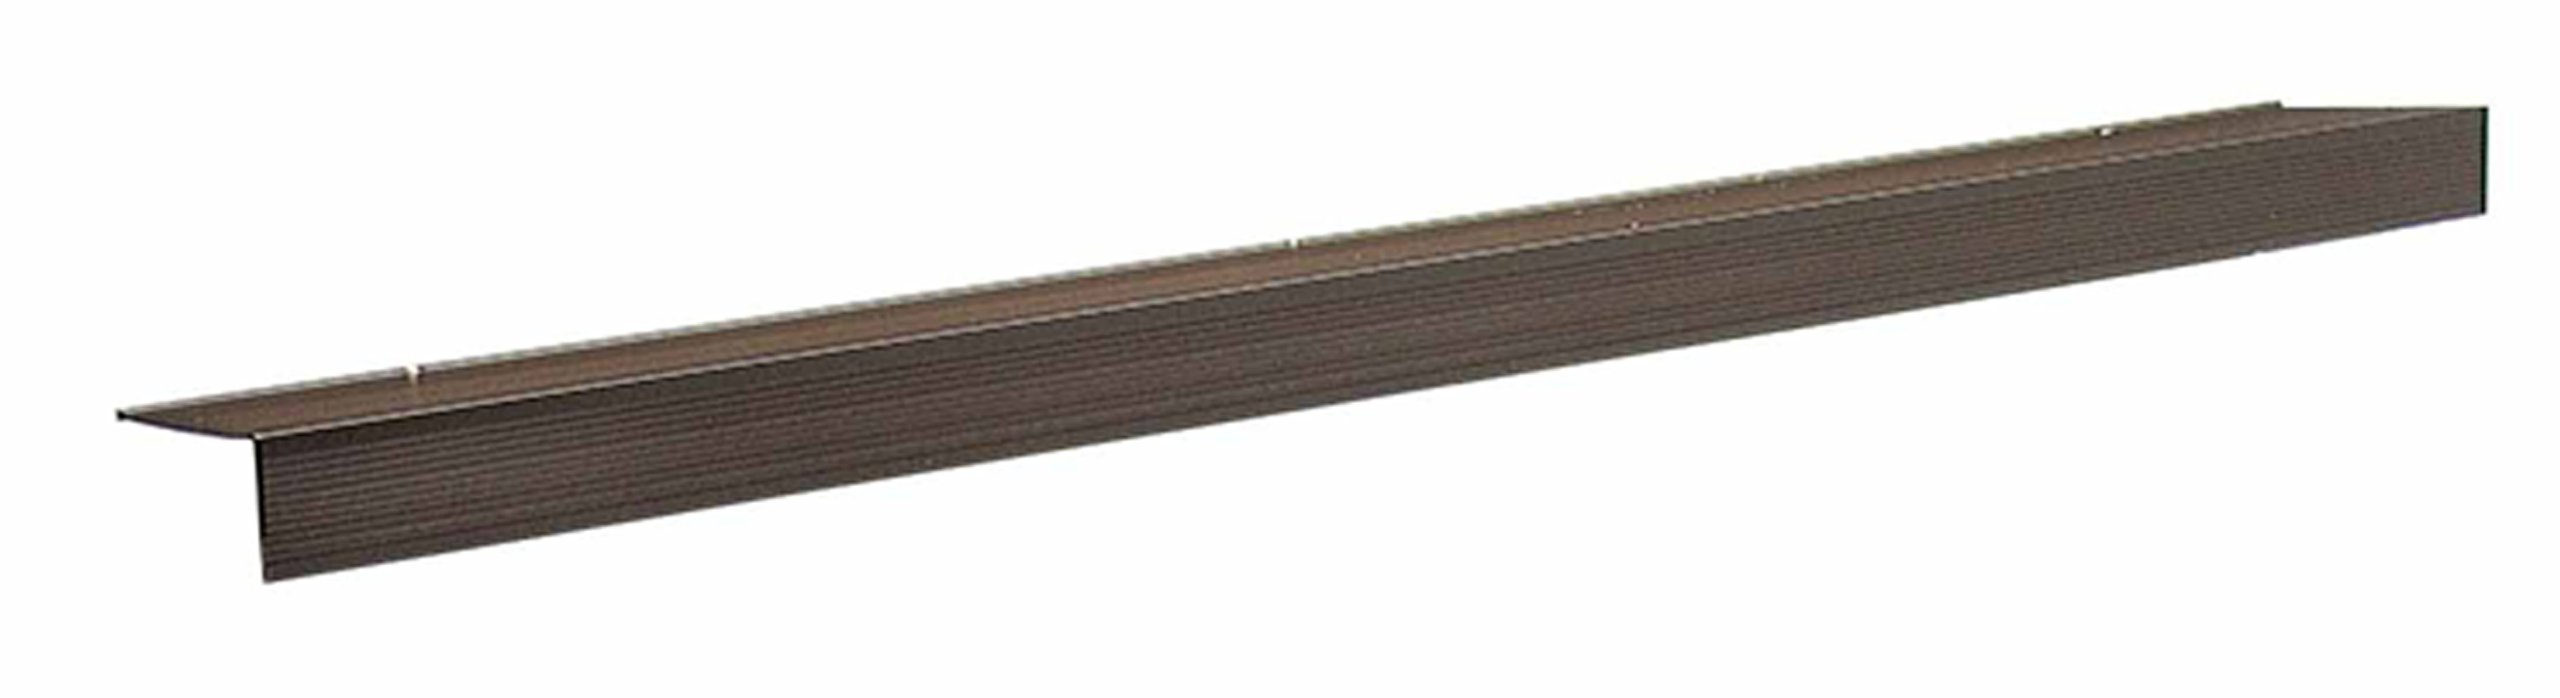 M-D Building Products 69858 4-1/2-Inch by 1-1/2-Inch by 72-Inch TH083 Sill Nosing, Bronze